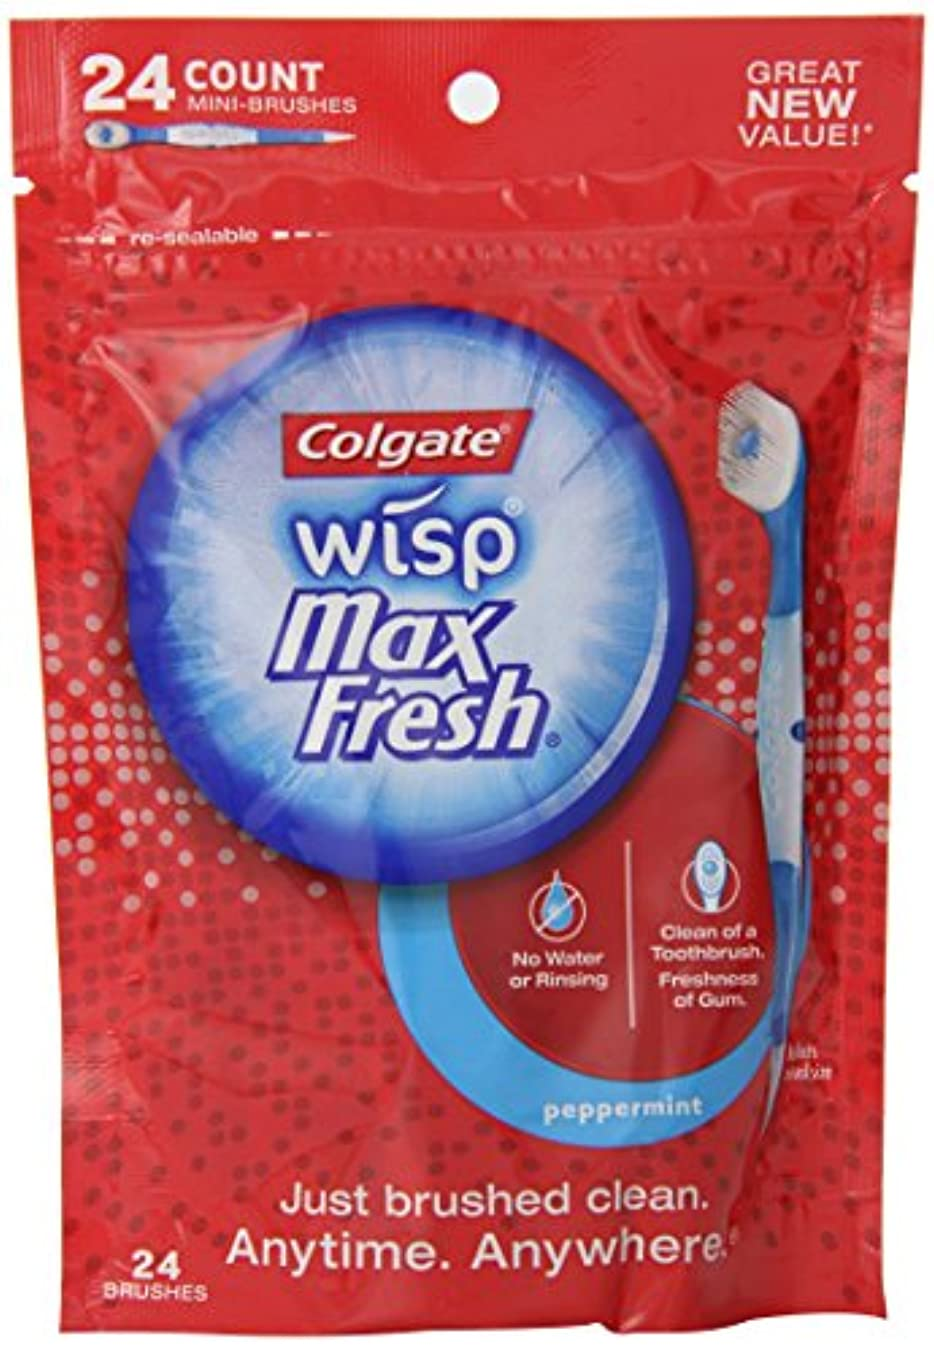 忘れる公平な何十人もColgate Wisp Portable Mini-Brush Max Fresh, Peppermint, 24 Count by Colgate [並行輸入品]